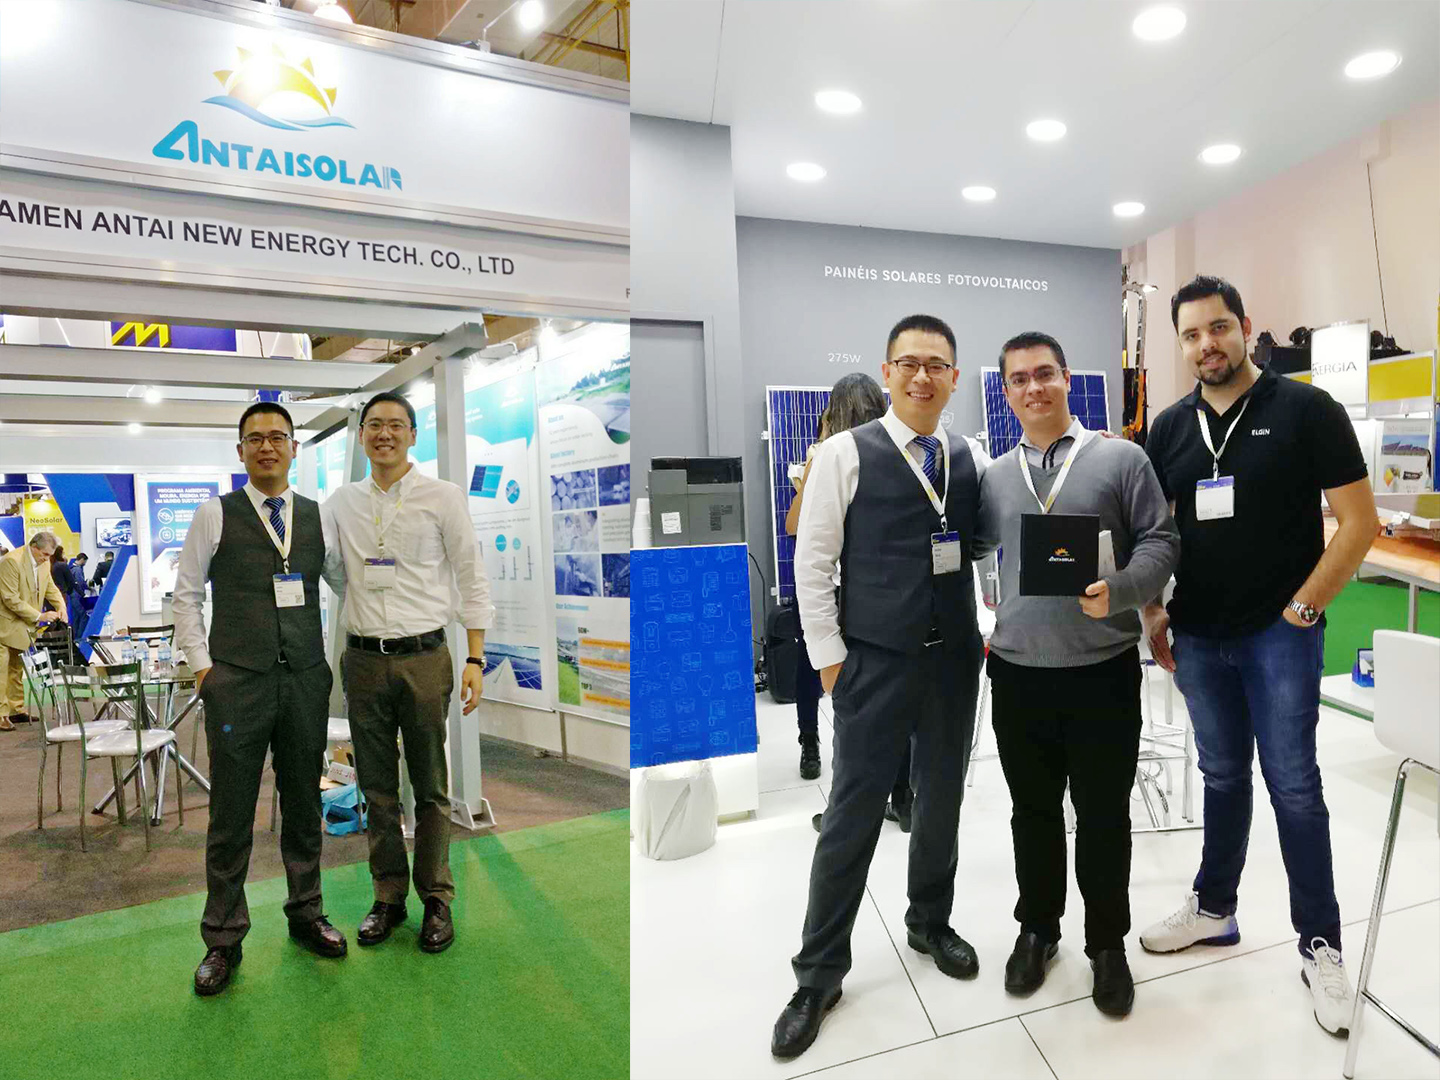 Antaisolar at the 2018 InterSolar South America International Solar Exhibition